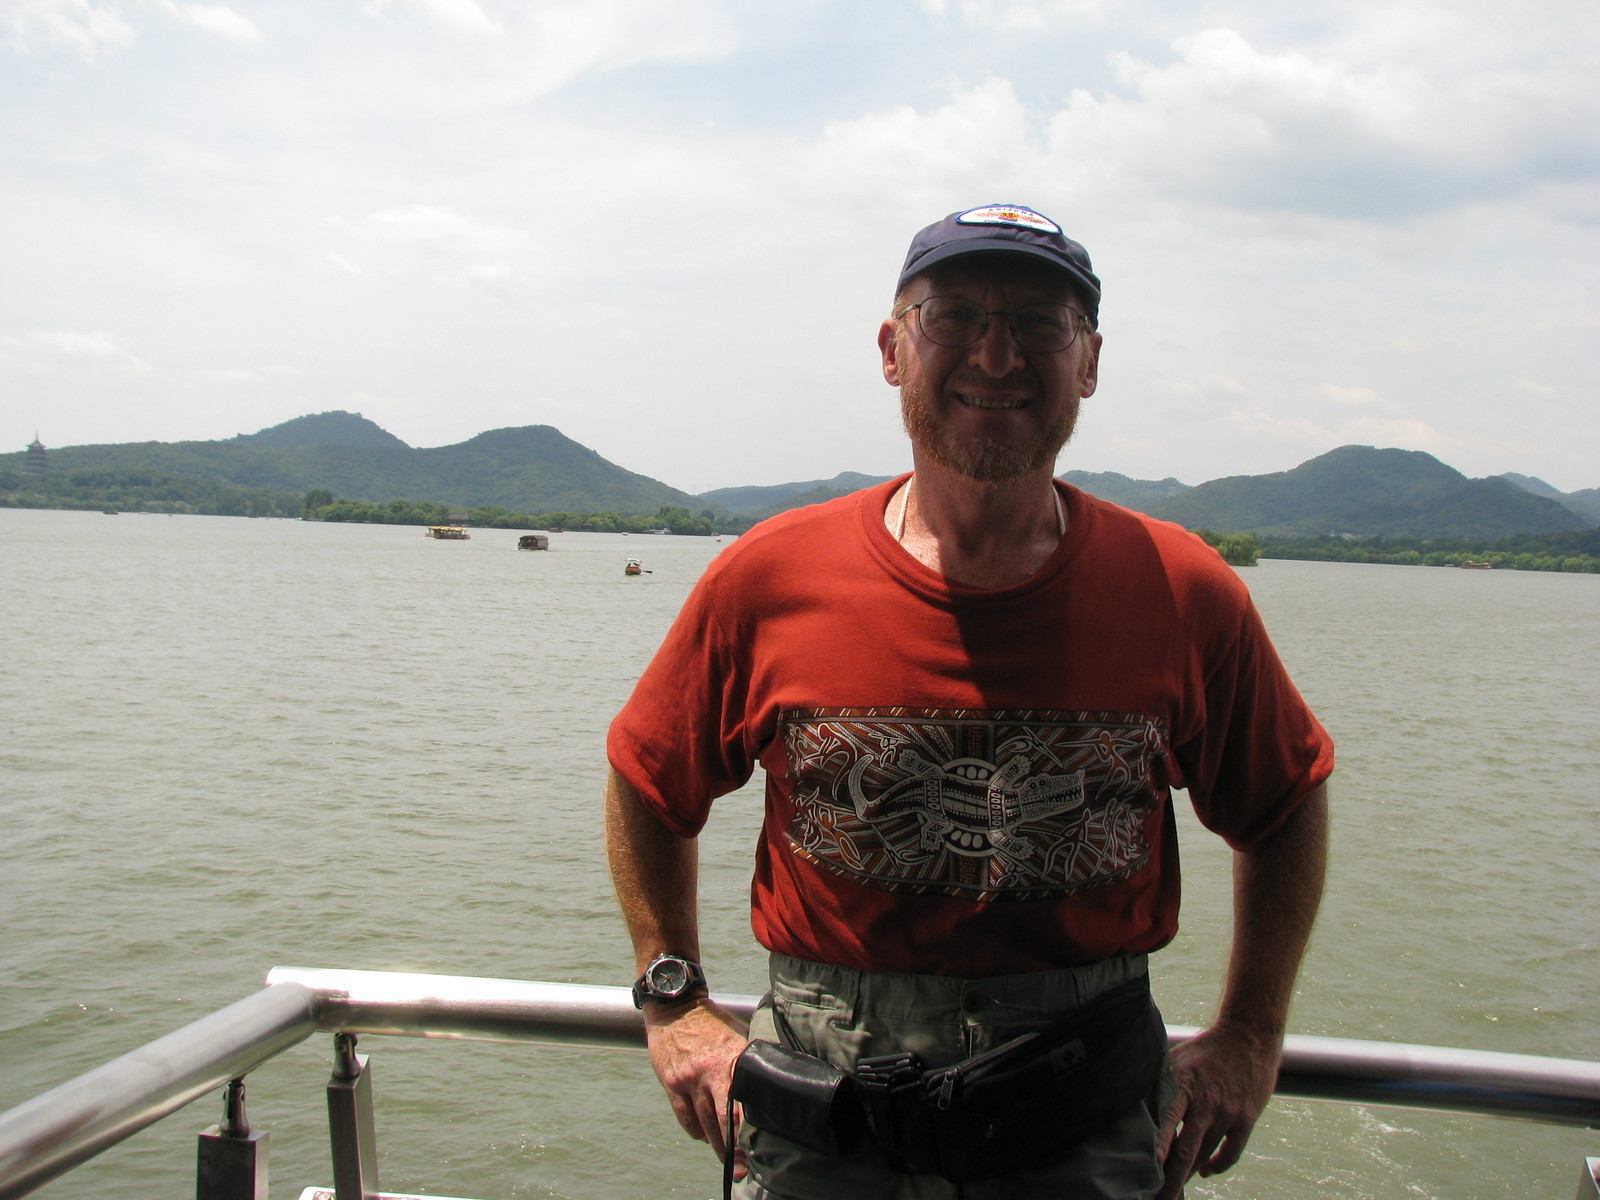 China eclipse - Mango's pictures - Adam on West Lake boat ride